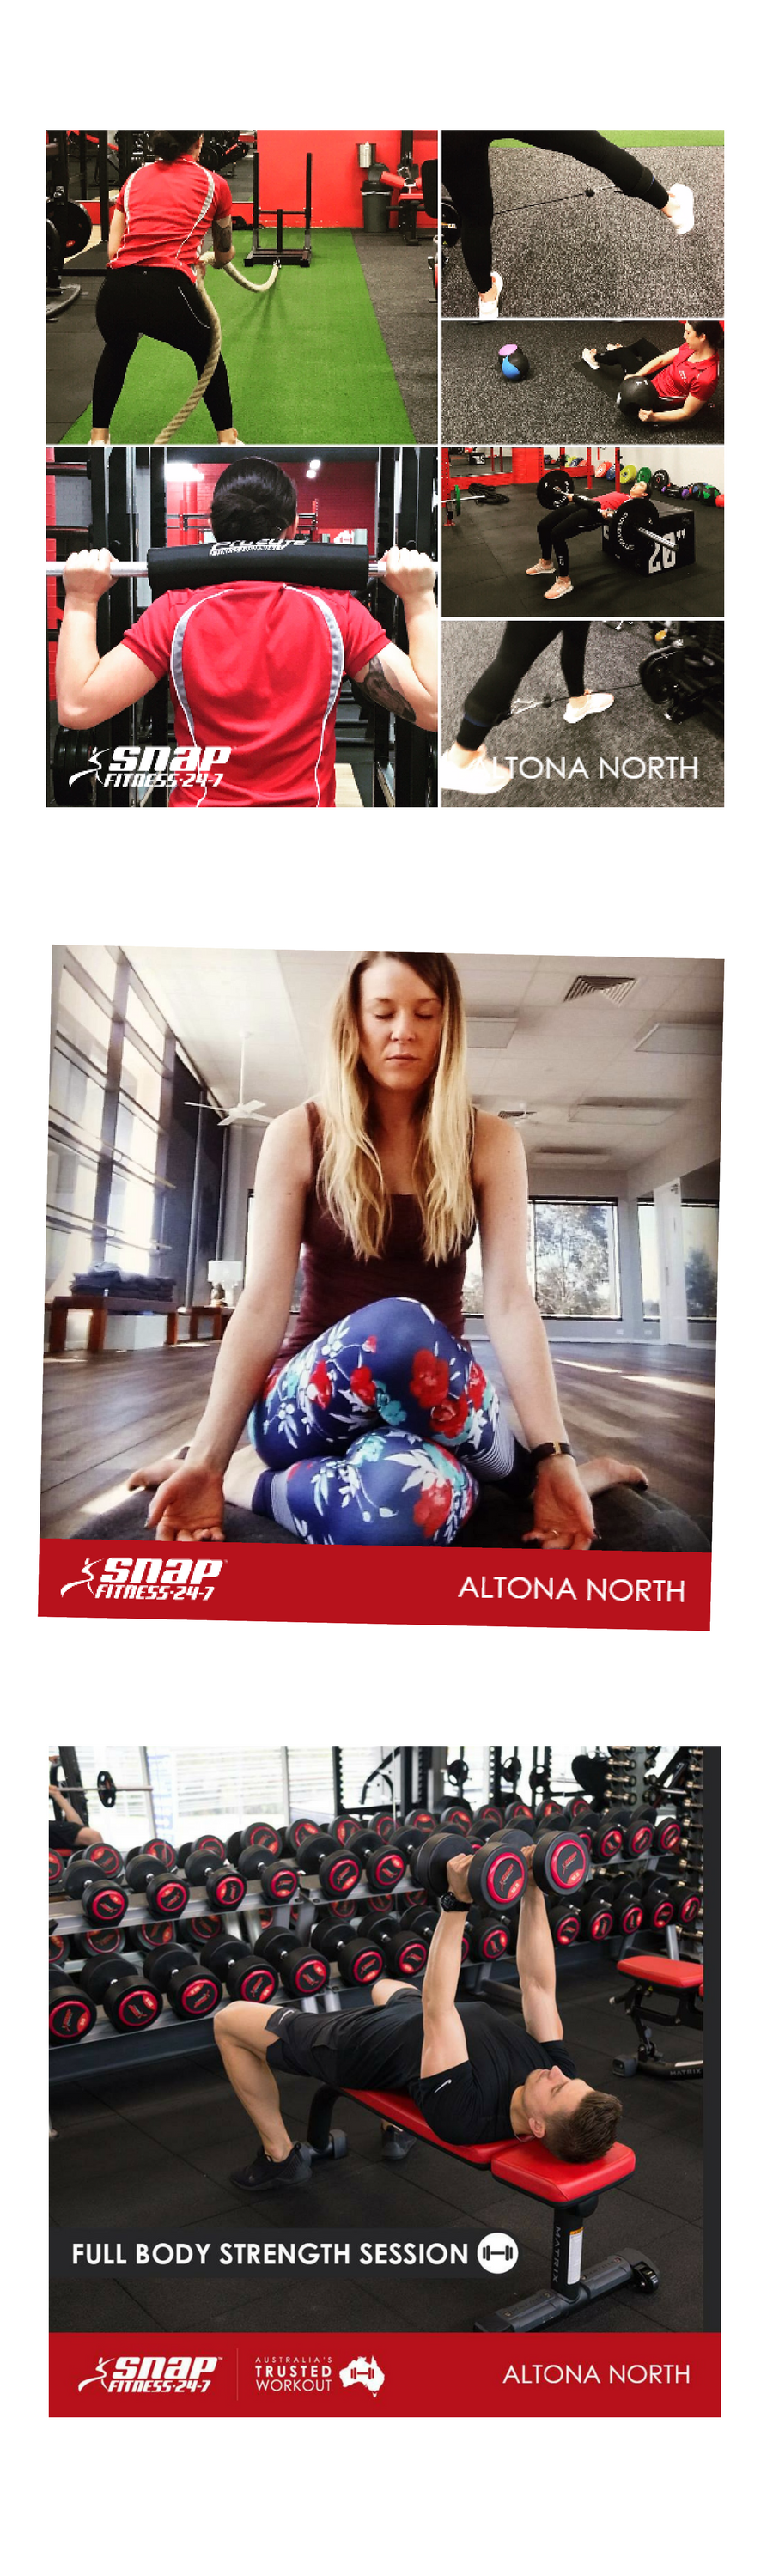 Snap Fitness - 24 Hour Gym Altona North Altona North